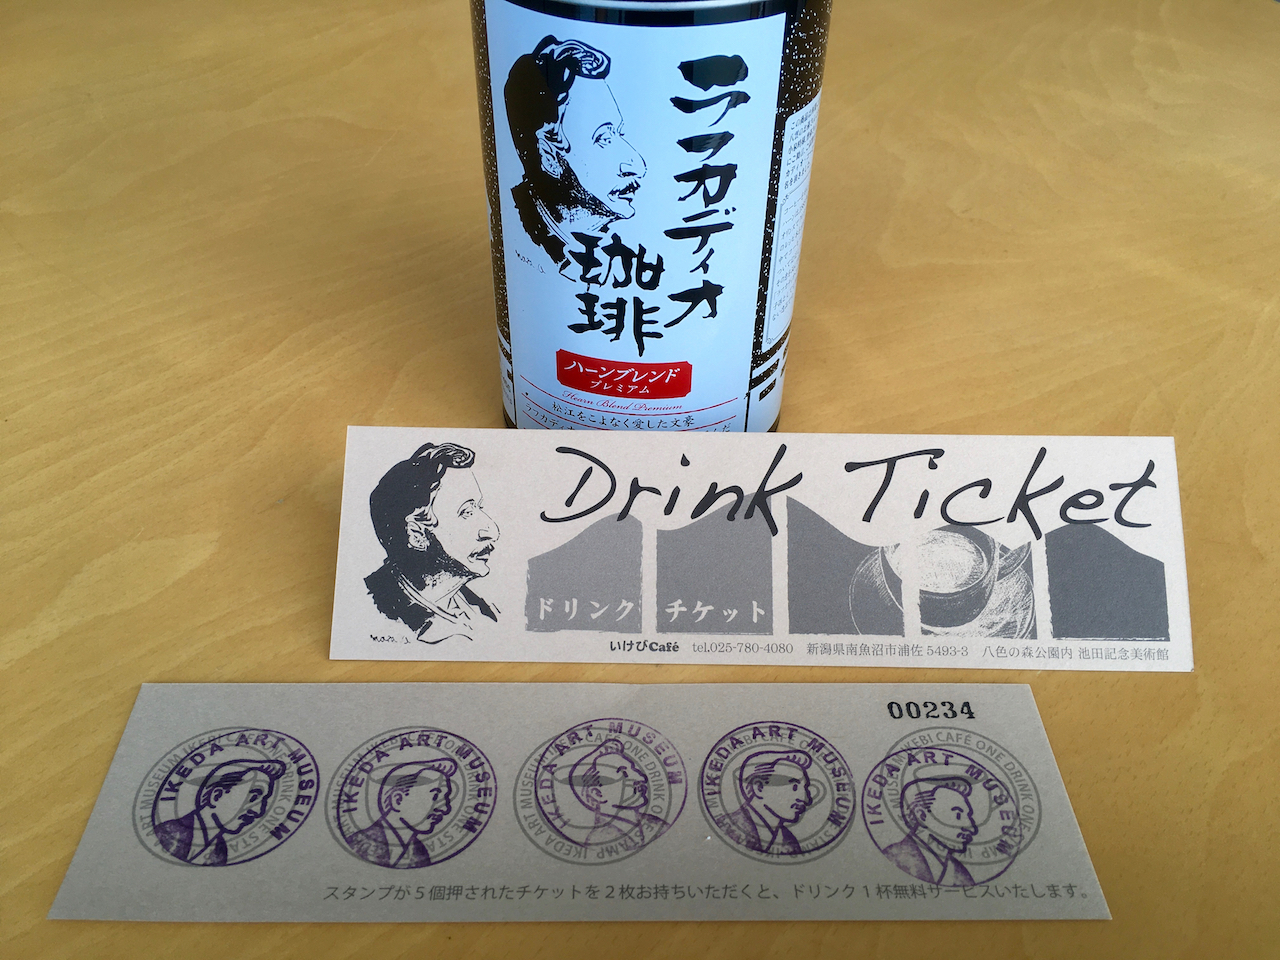 drink-ticket